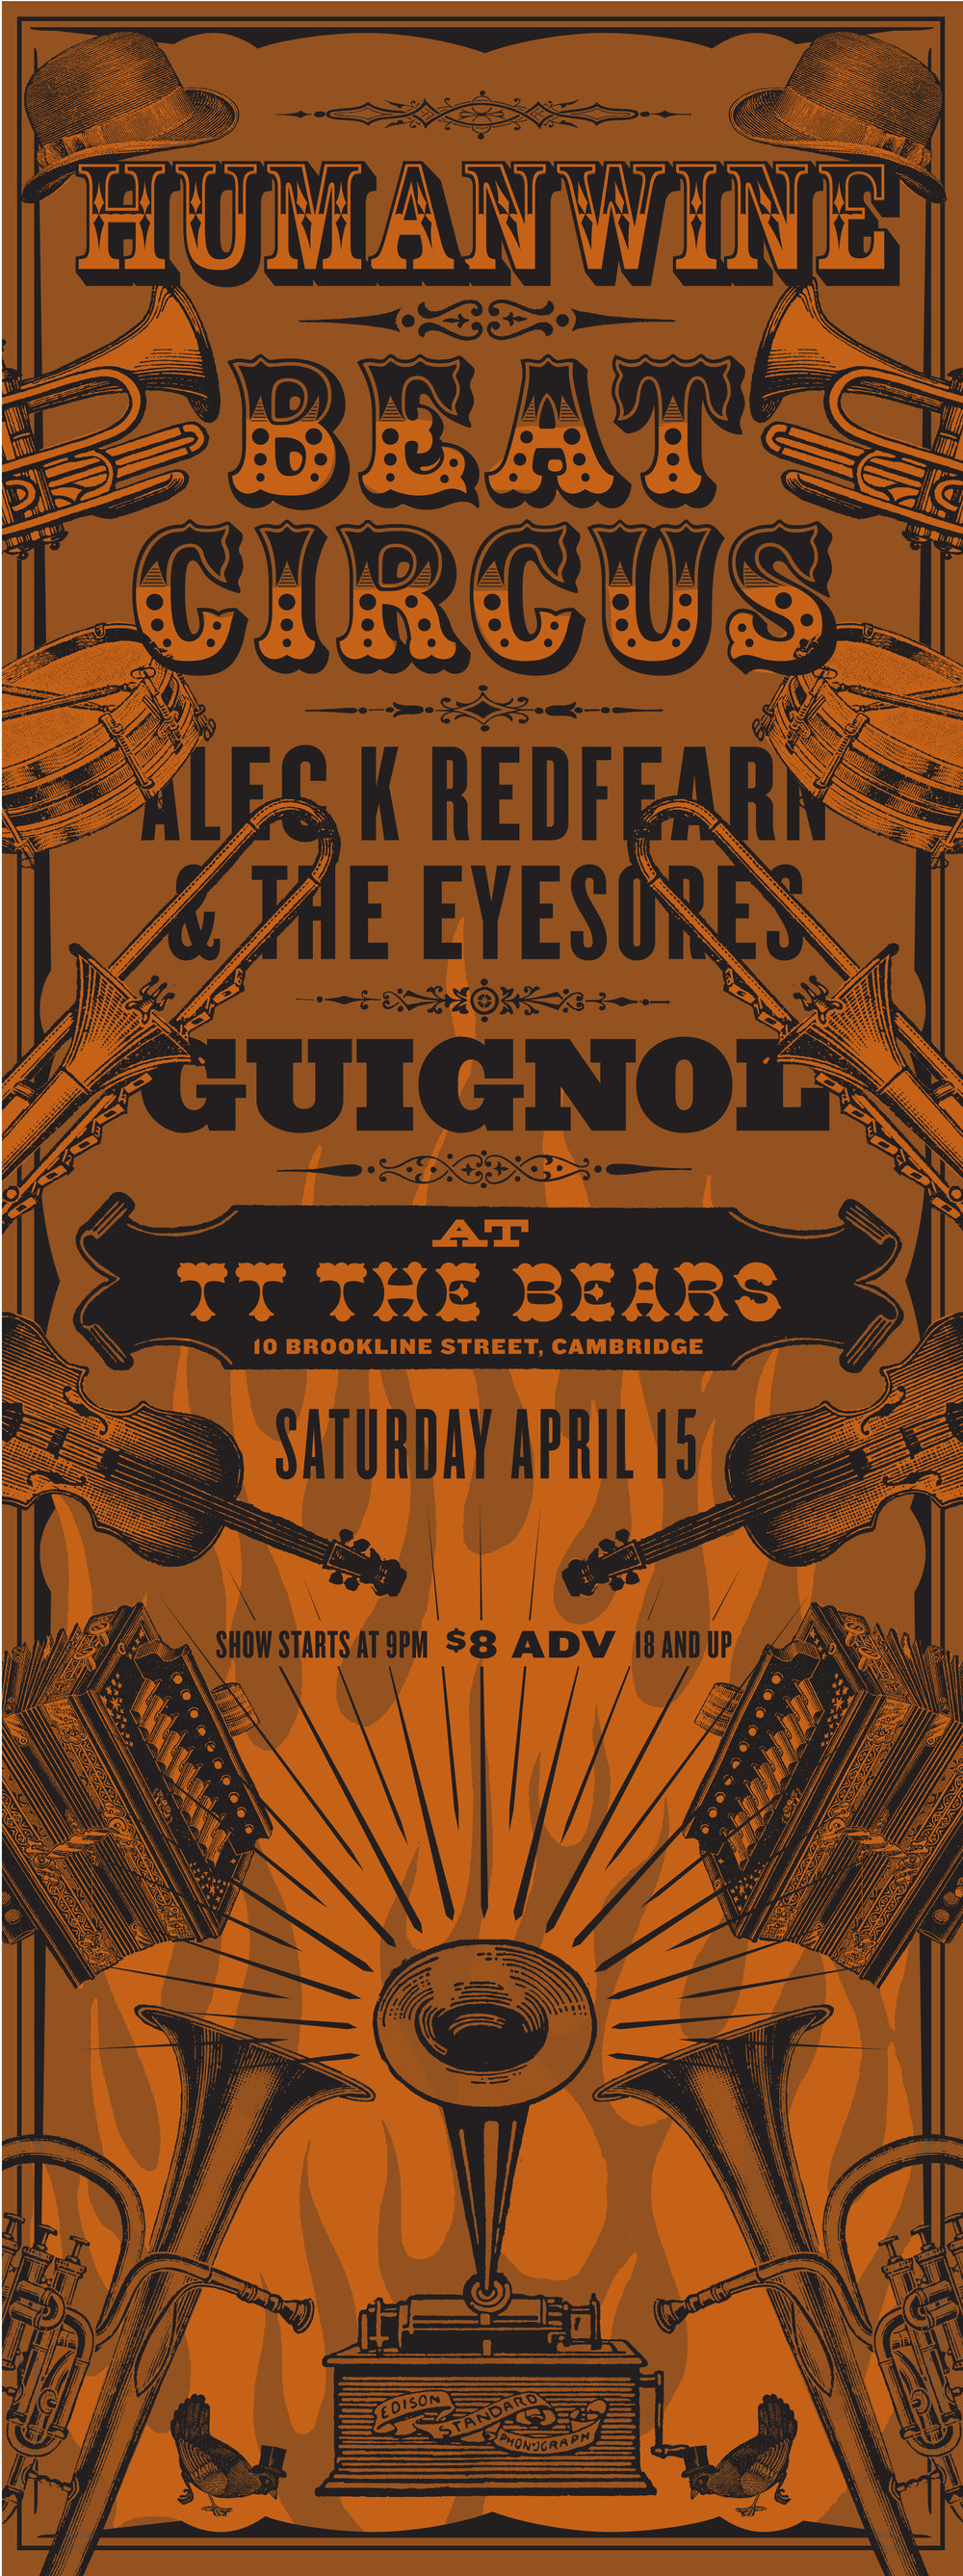 SAT APR 15 2006 TT THE BEARS CAMBRIDGE MA w/HUMANWINE, GUIGNOL, ALEC K REDFEARN. BY LURE DESIGN